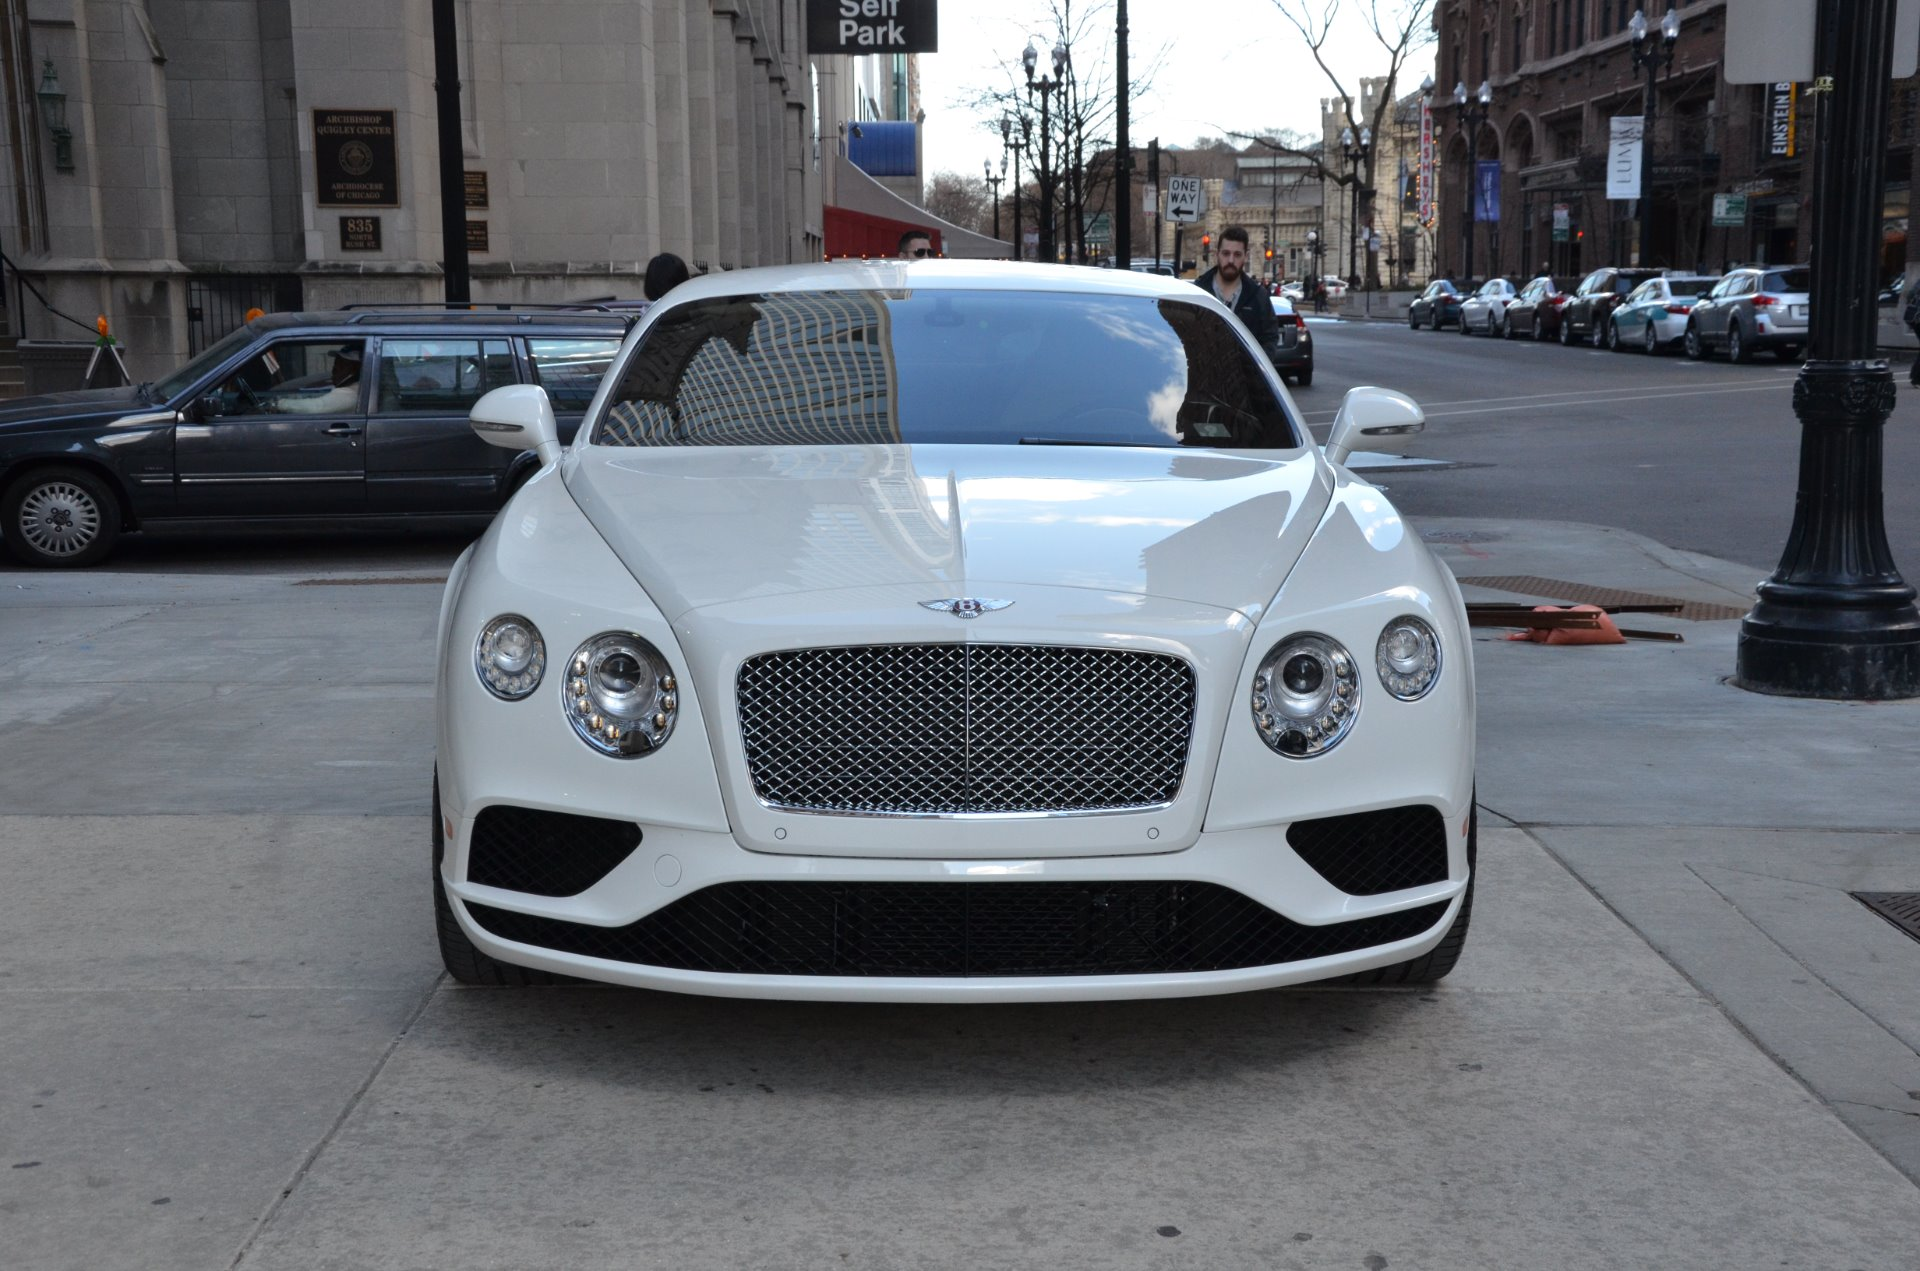 2016 bentley continental gt v8 stock r246a for sale near chicago il il bentley dealer. Black Bedroom Furniture Sets. Home Design Ideas